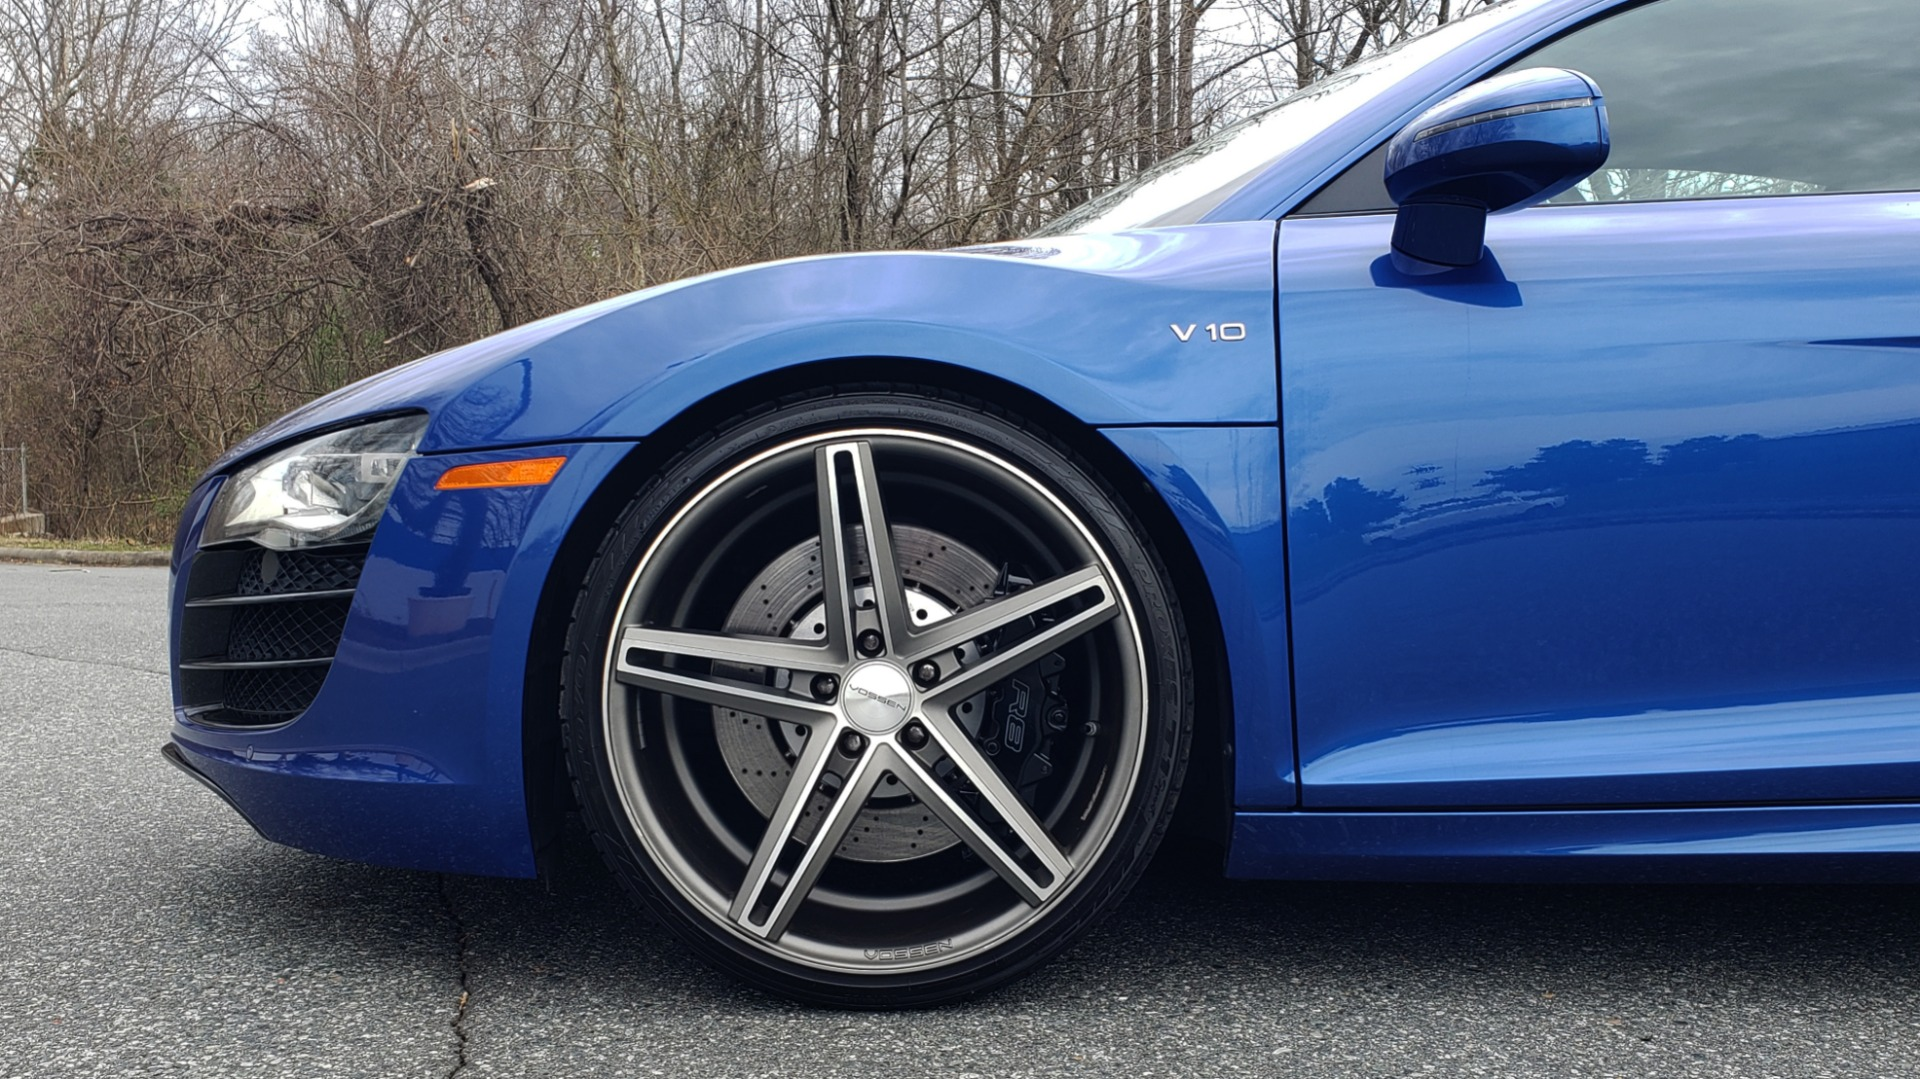 Used 2010 Audi R8 5.2L V10 / AWD / NAV / B&O SND / HTD STS / CUSTOM EXH & WHEELS for sale $78,000 at Formula Imports in Charlotte NC 28227 71